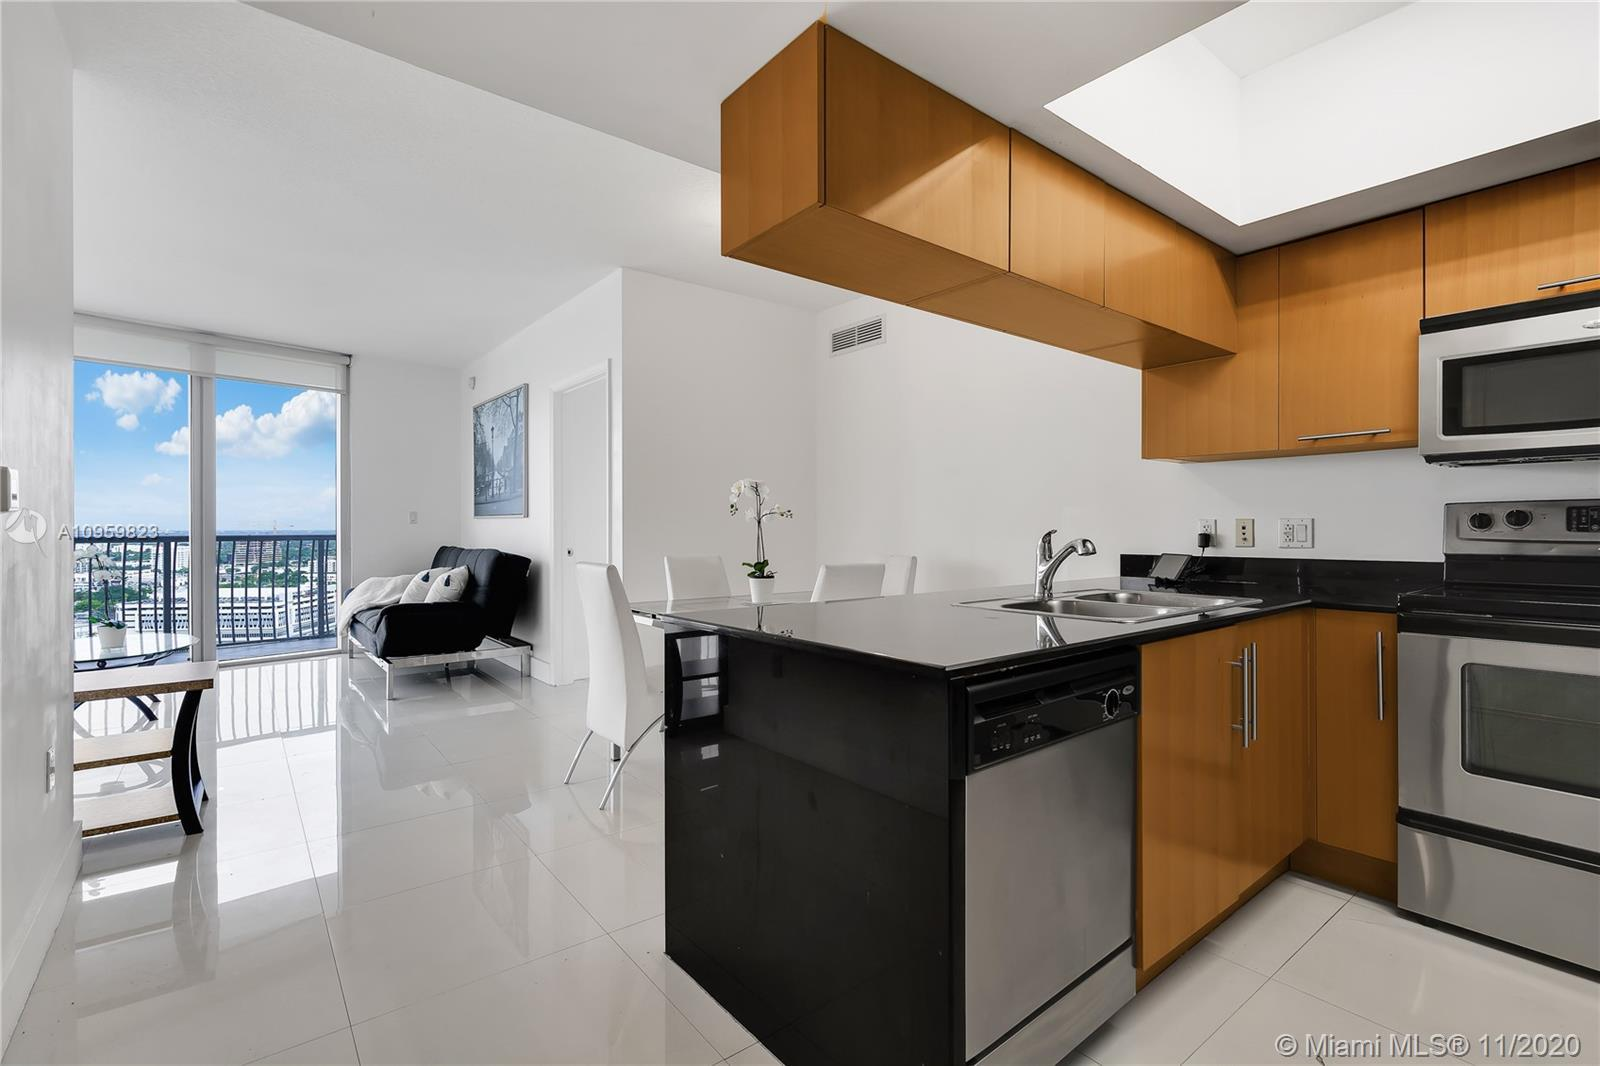 Amazing condo on the 26th floor with panoramic views of the downtown skyline! 2BR/2BA luxury residen